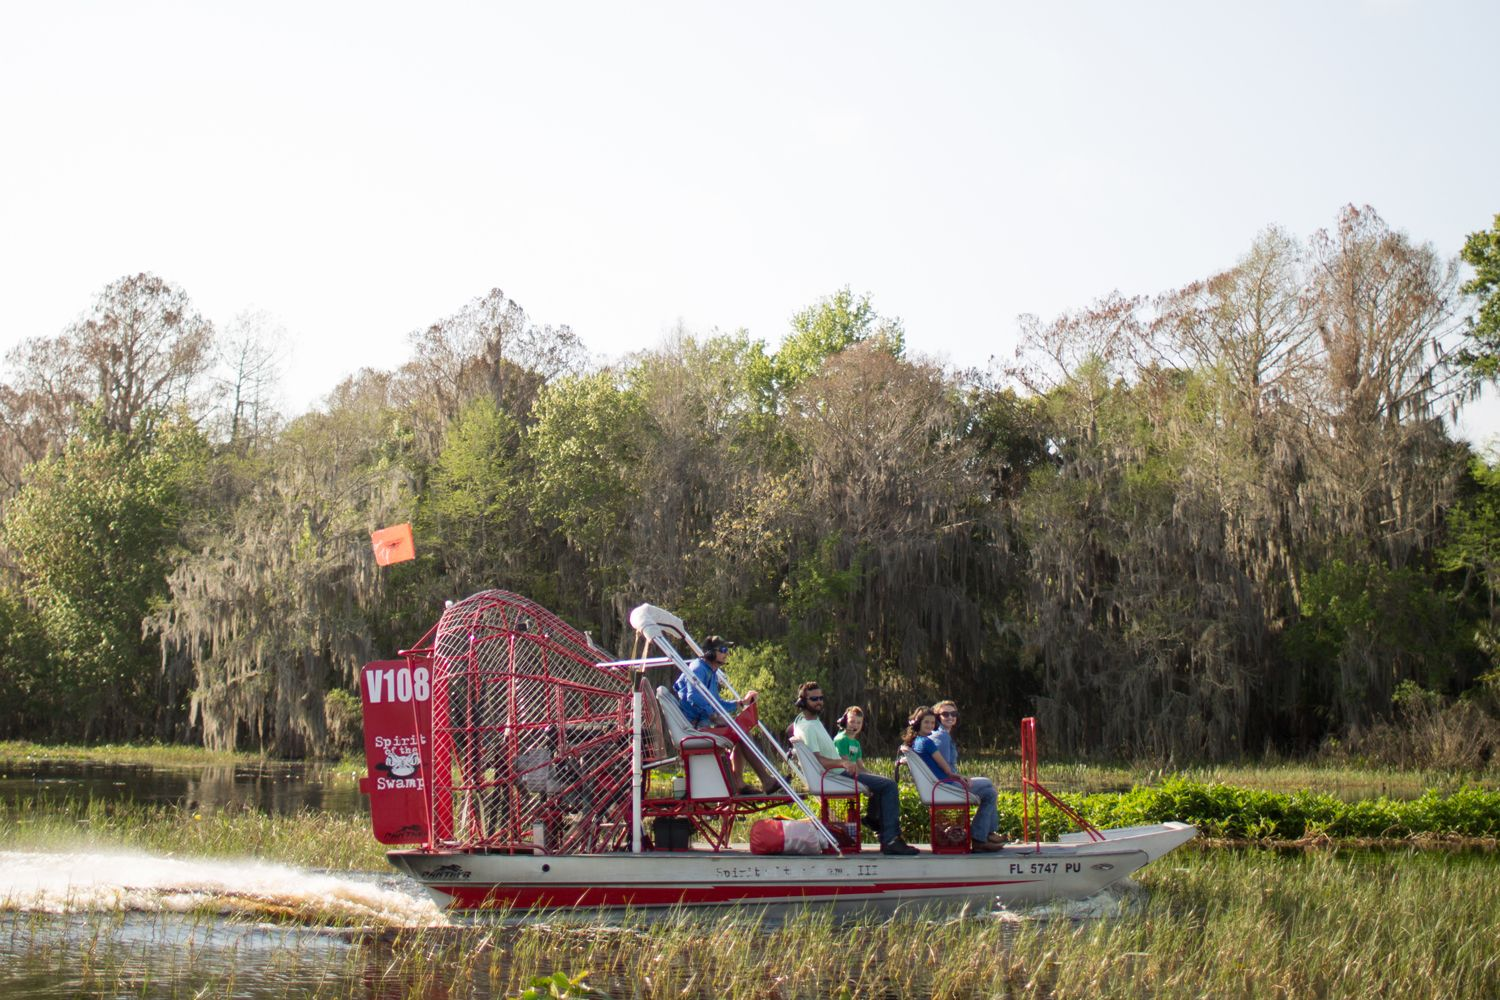 Orlando's Highest Rated Airboat Ride Ranked 1 by Trip